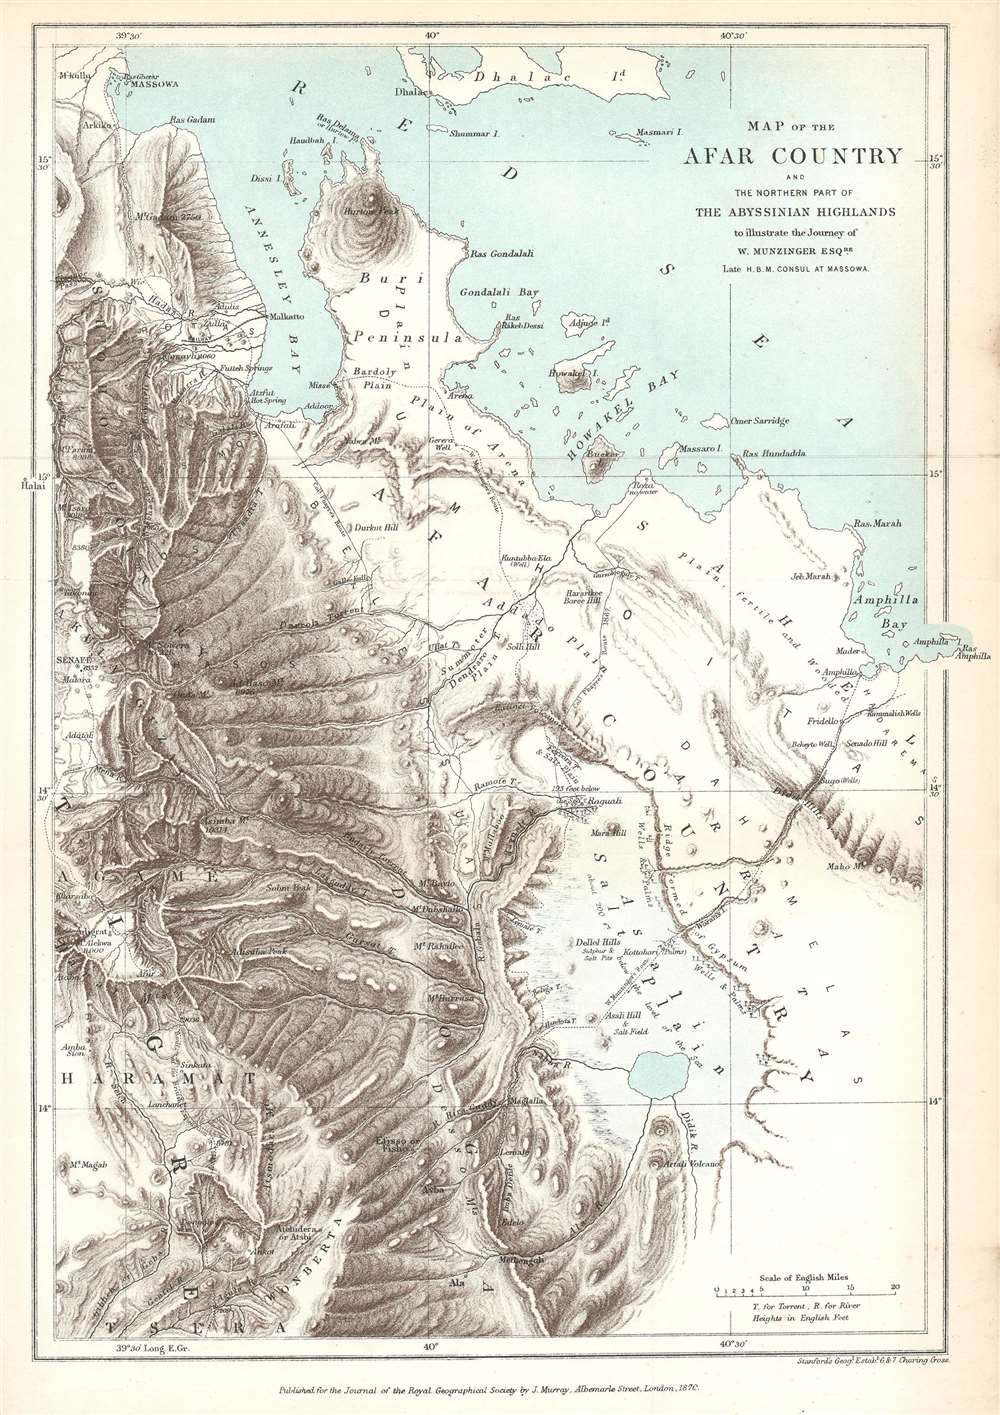 1870 Murray Map of the Afar Country, Eritrea and Ethiopia